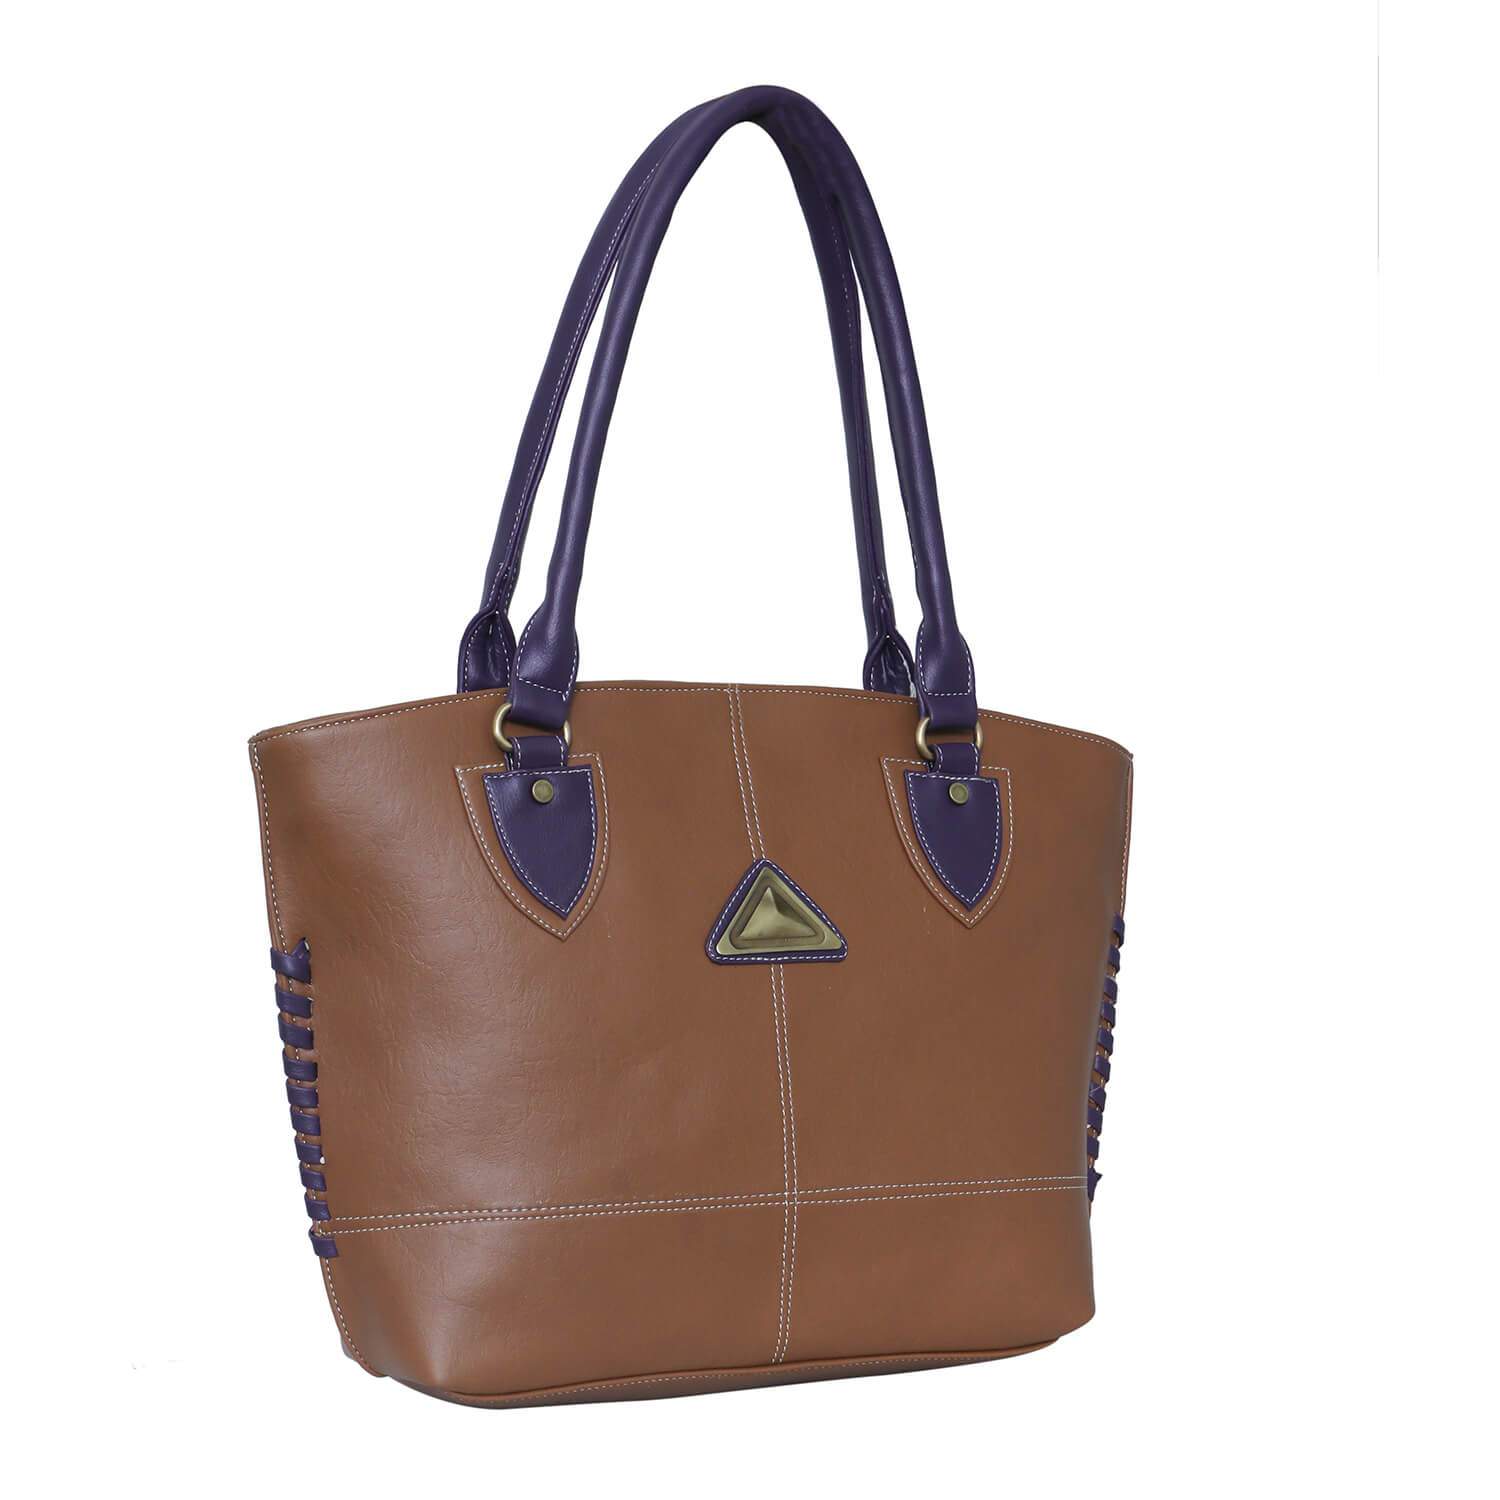 Right Choice RCH308 women's handbags in a modern type